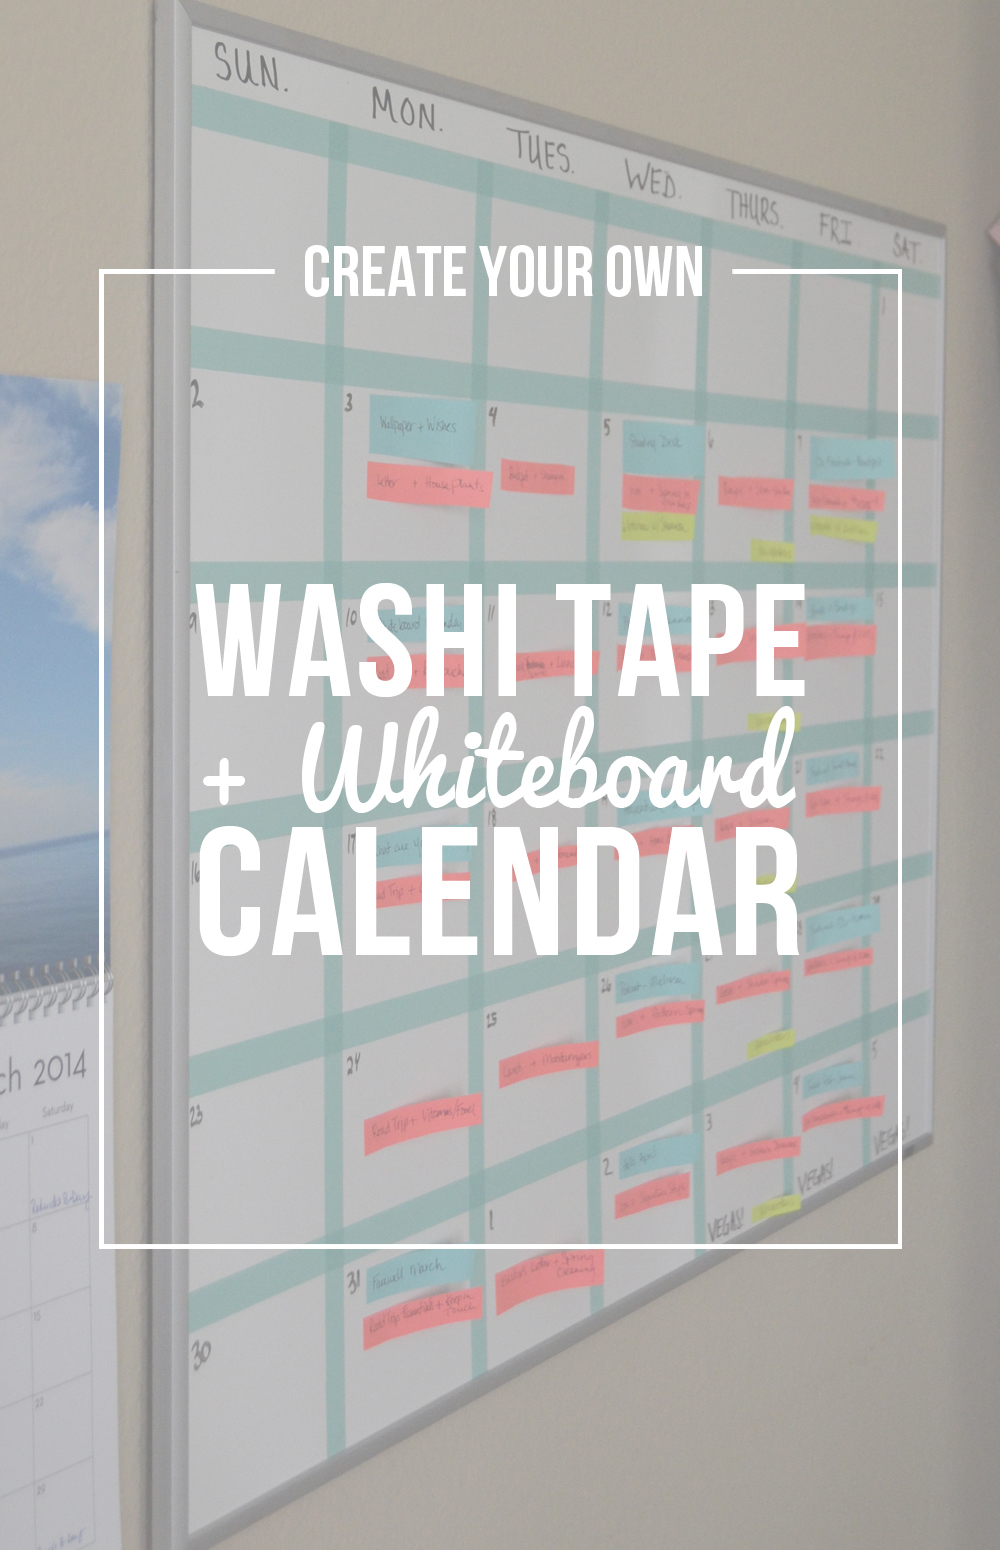 How to make your own calendar diy home design create your own washi tape whiteboard calendar solutioingenieria Image collections